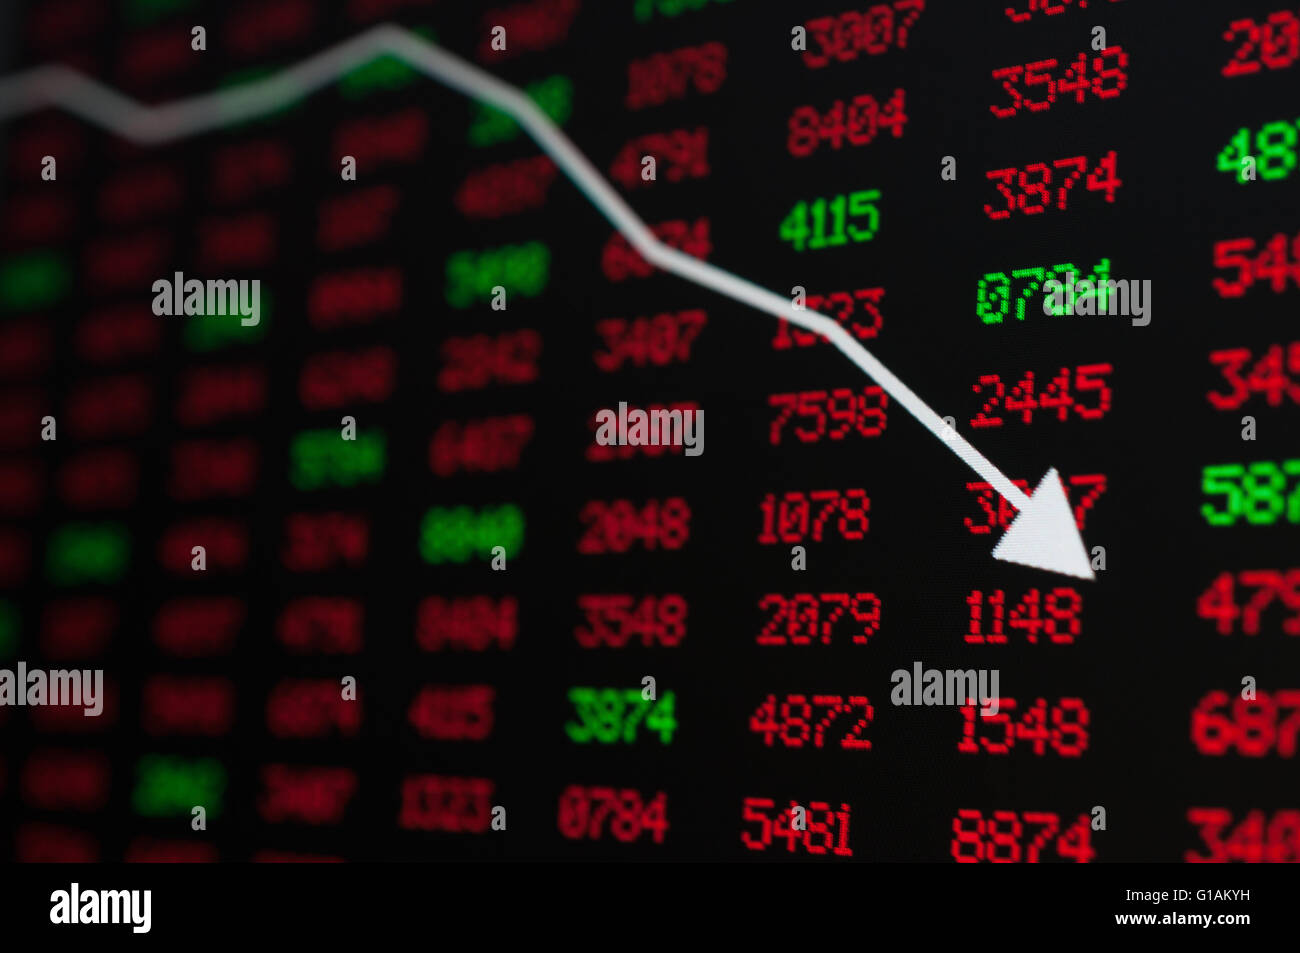 Stock Market - Arrow Graph Going Down on Display With Red and Green Figures - Stock Image